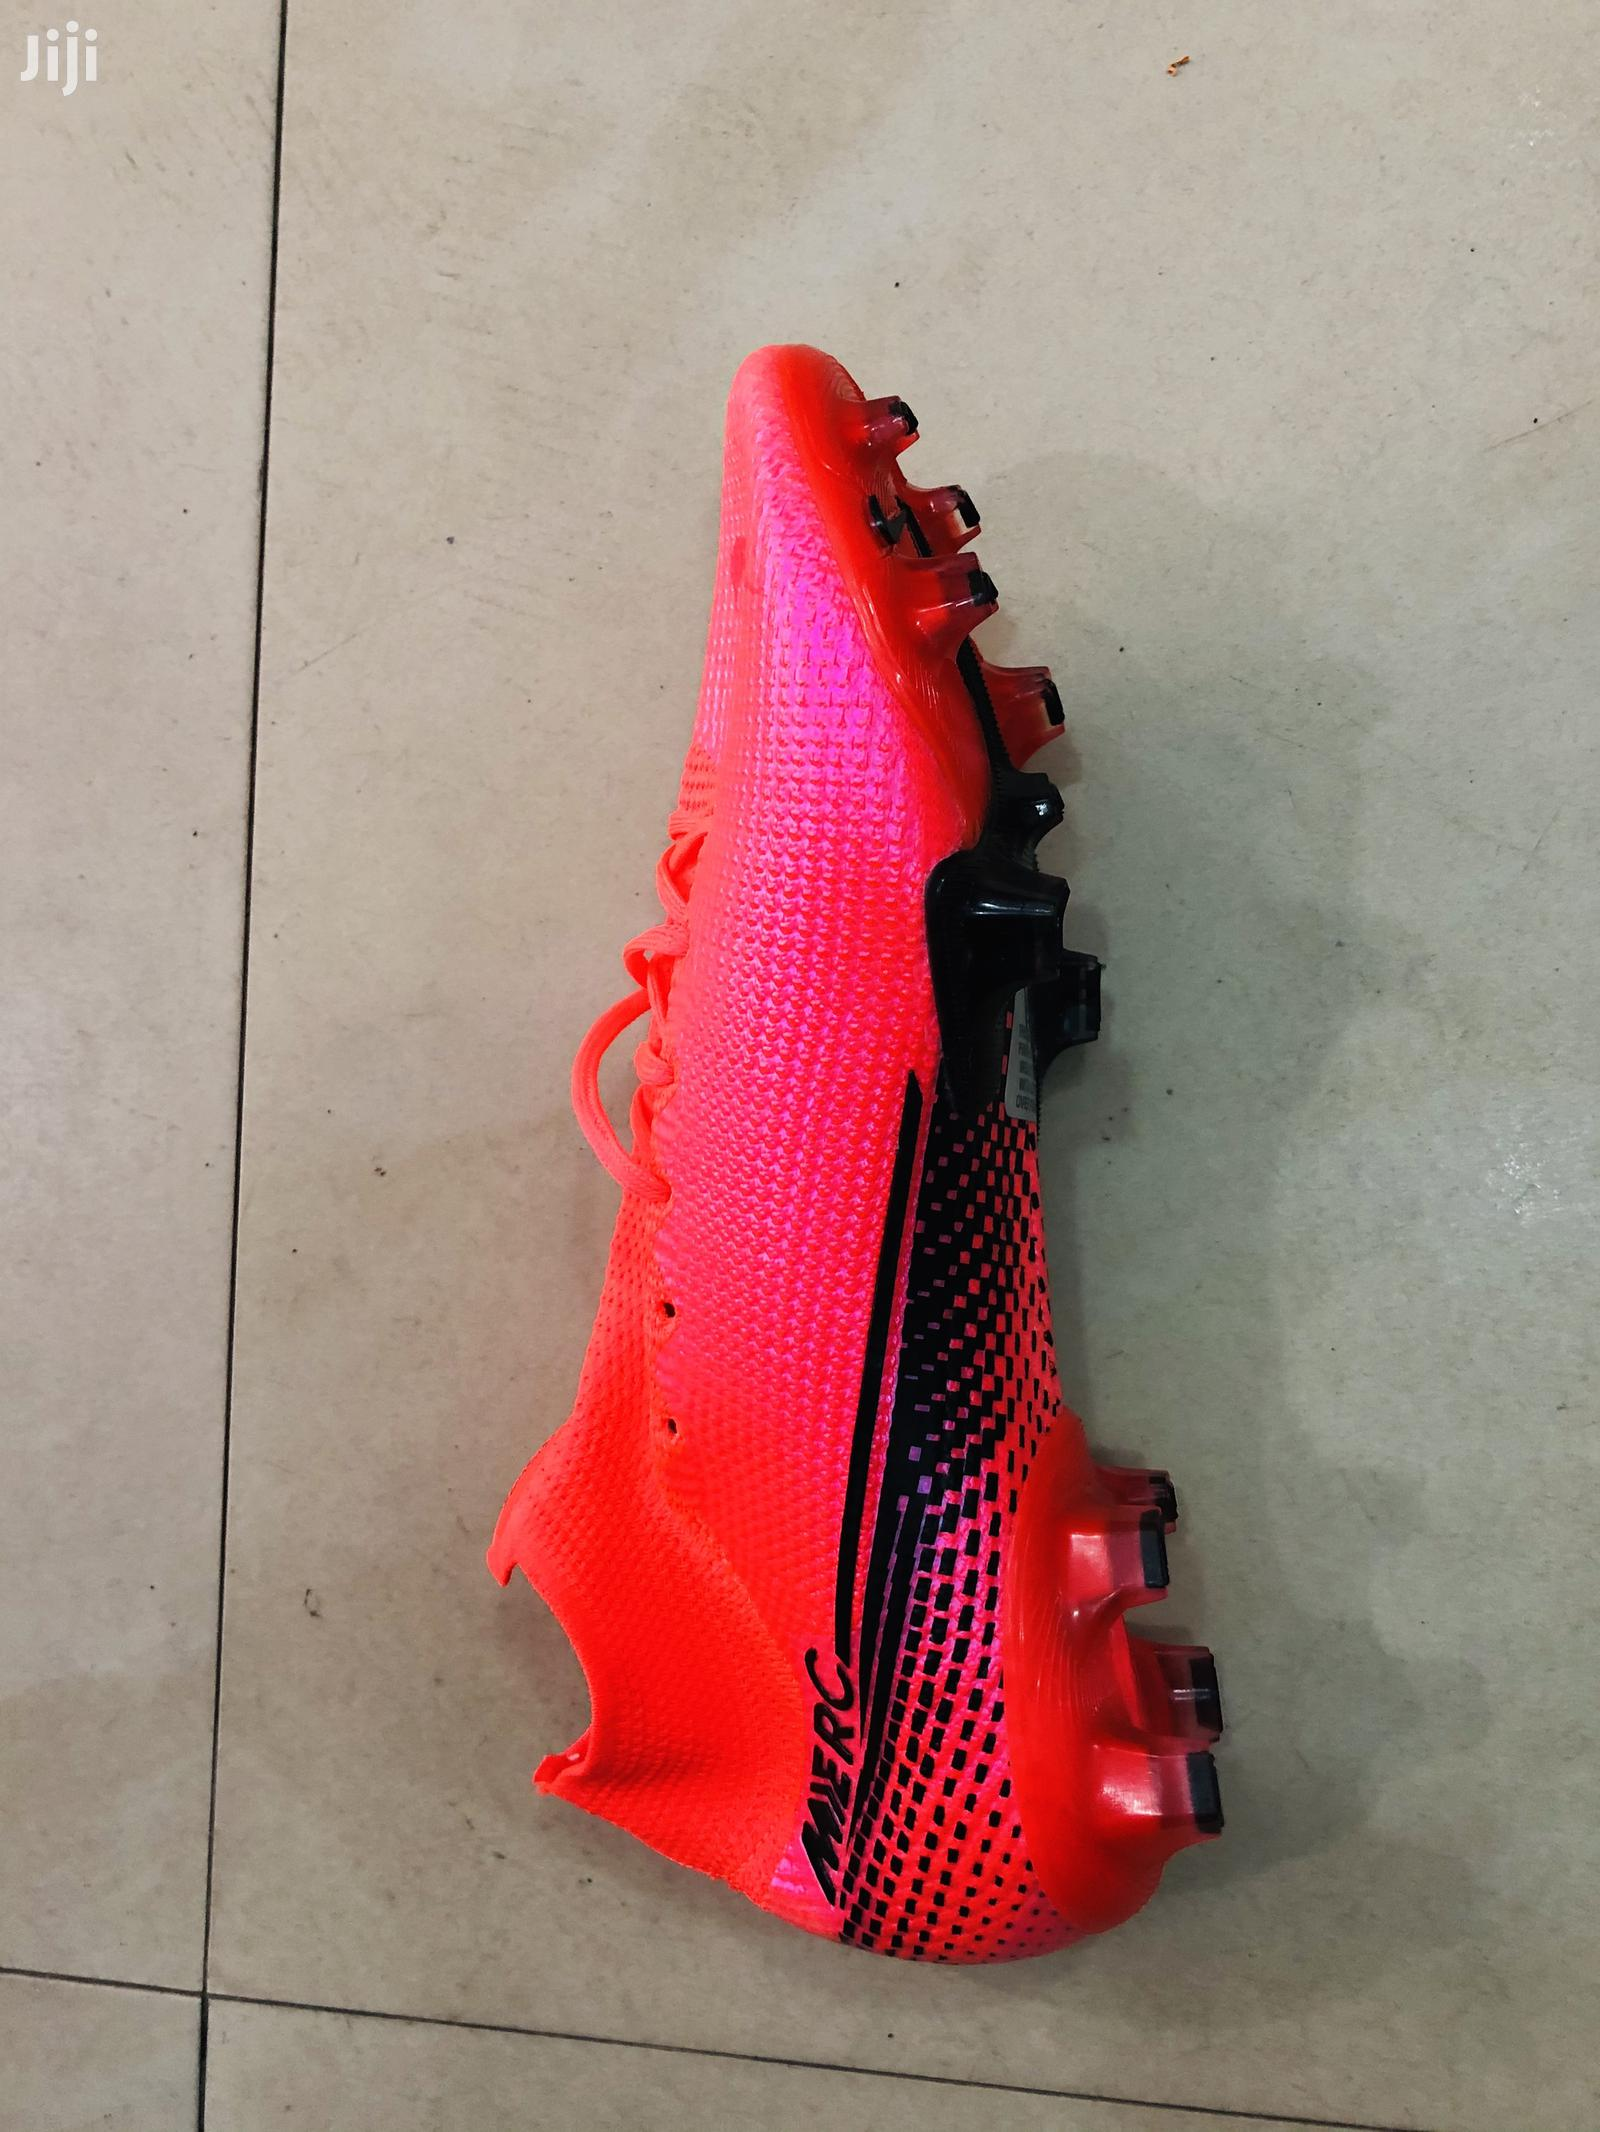 Original Nike Football Boots | Shoes for sale in Madina, Greater Accra, Ghana